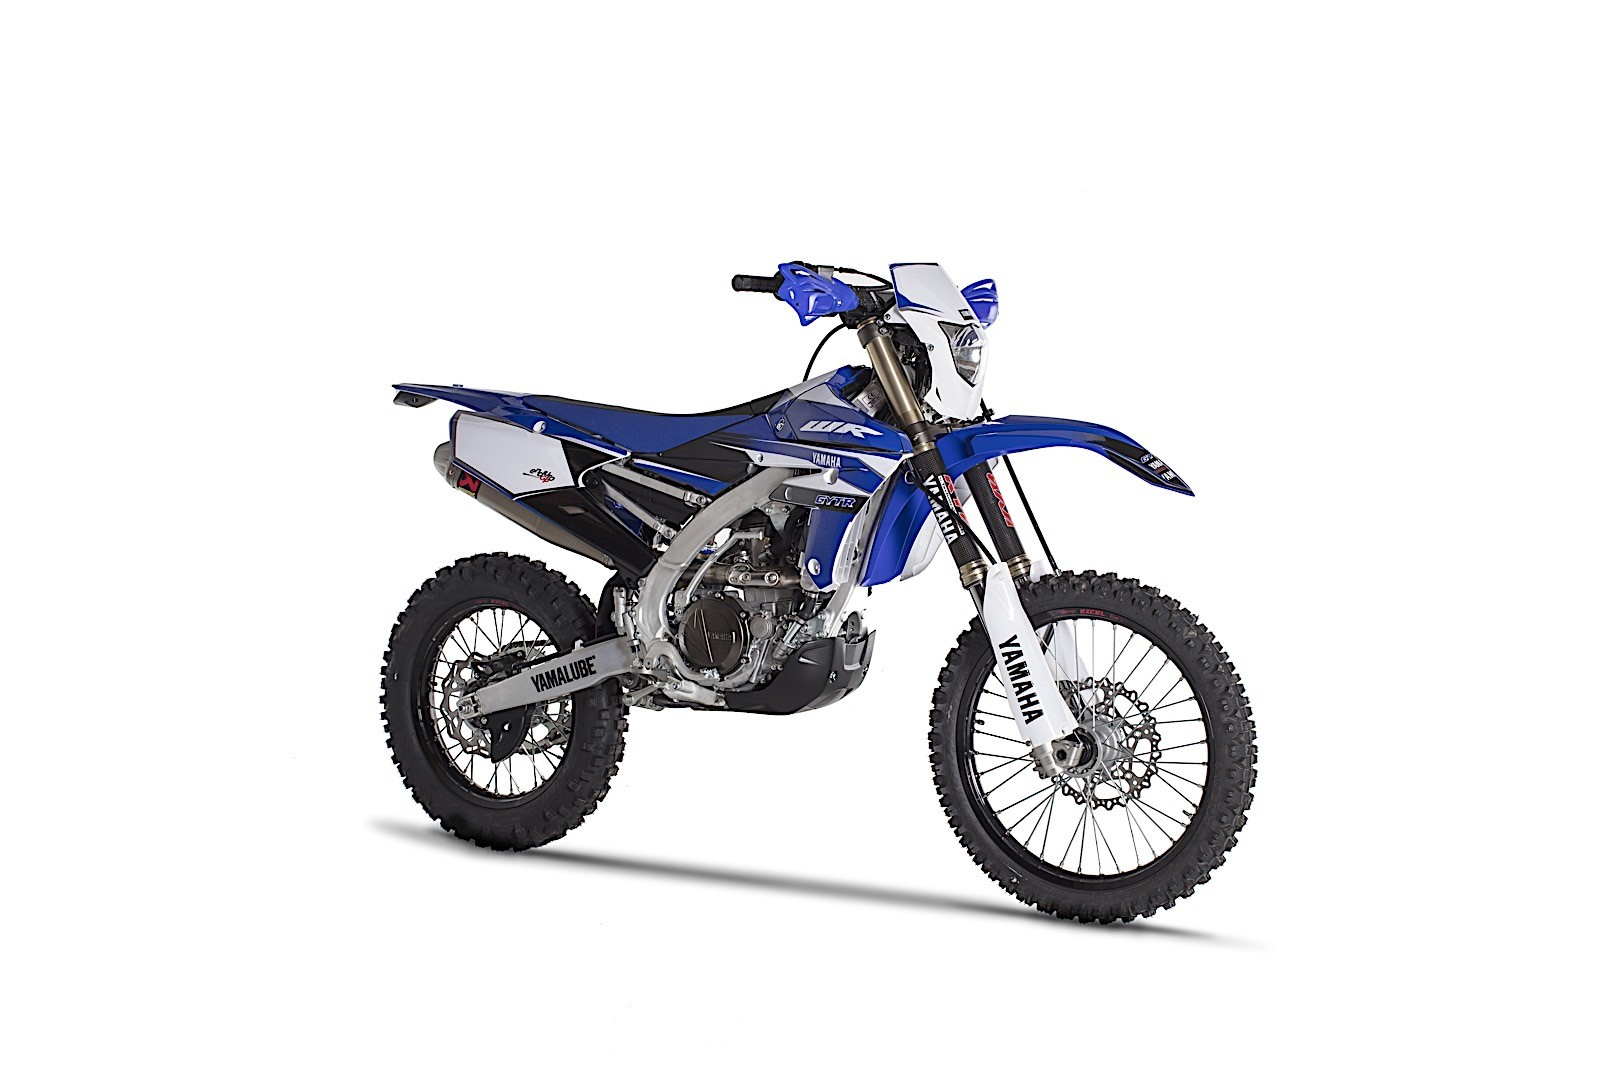 2018 yamaha wr450f and wr250f endorogp special editions for Yamaha adventure bike 2018